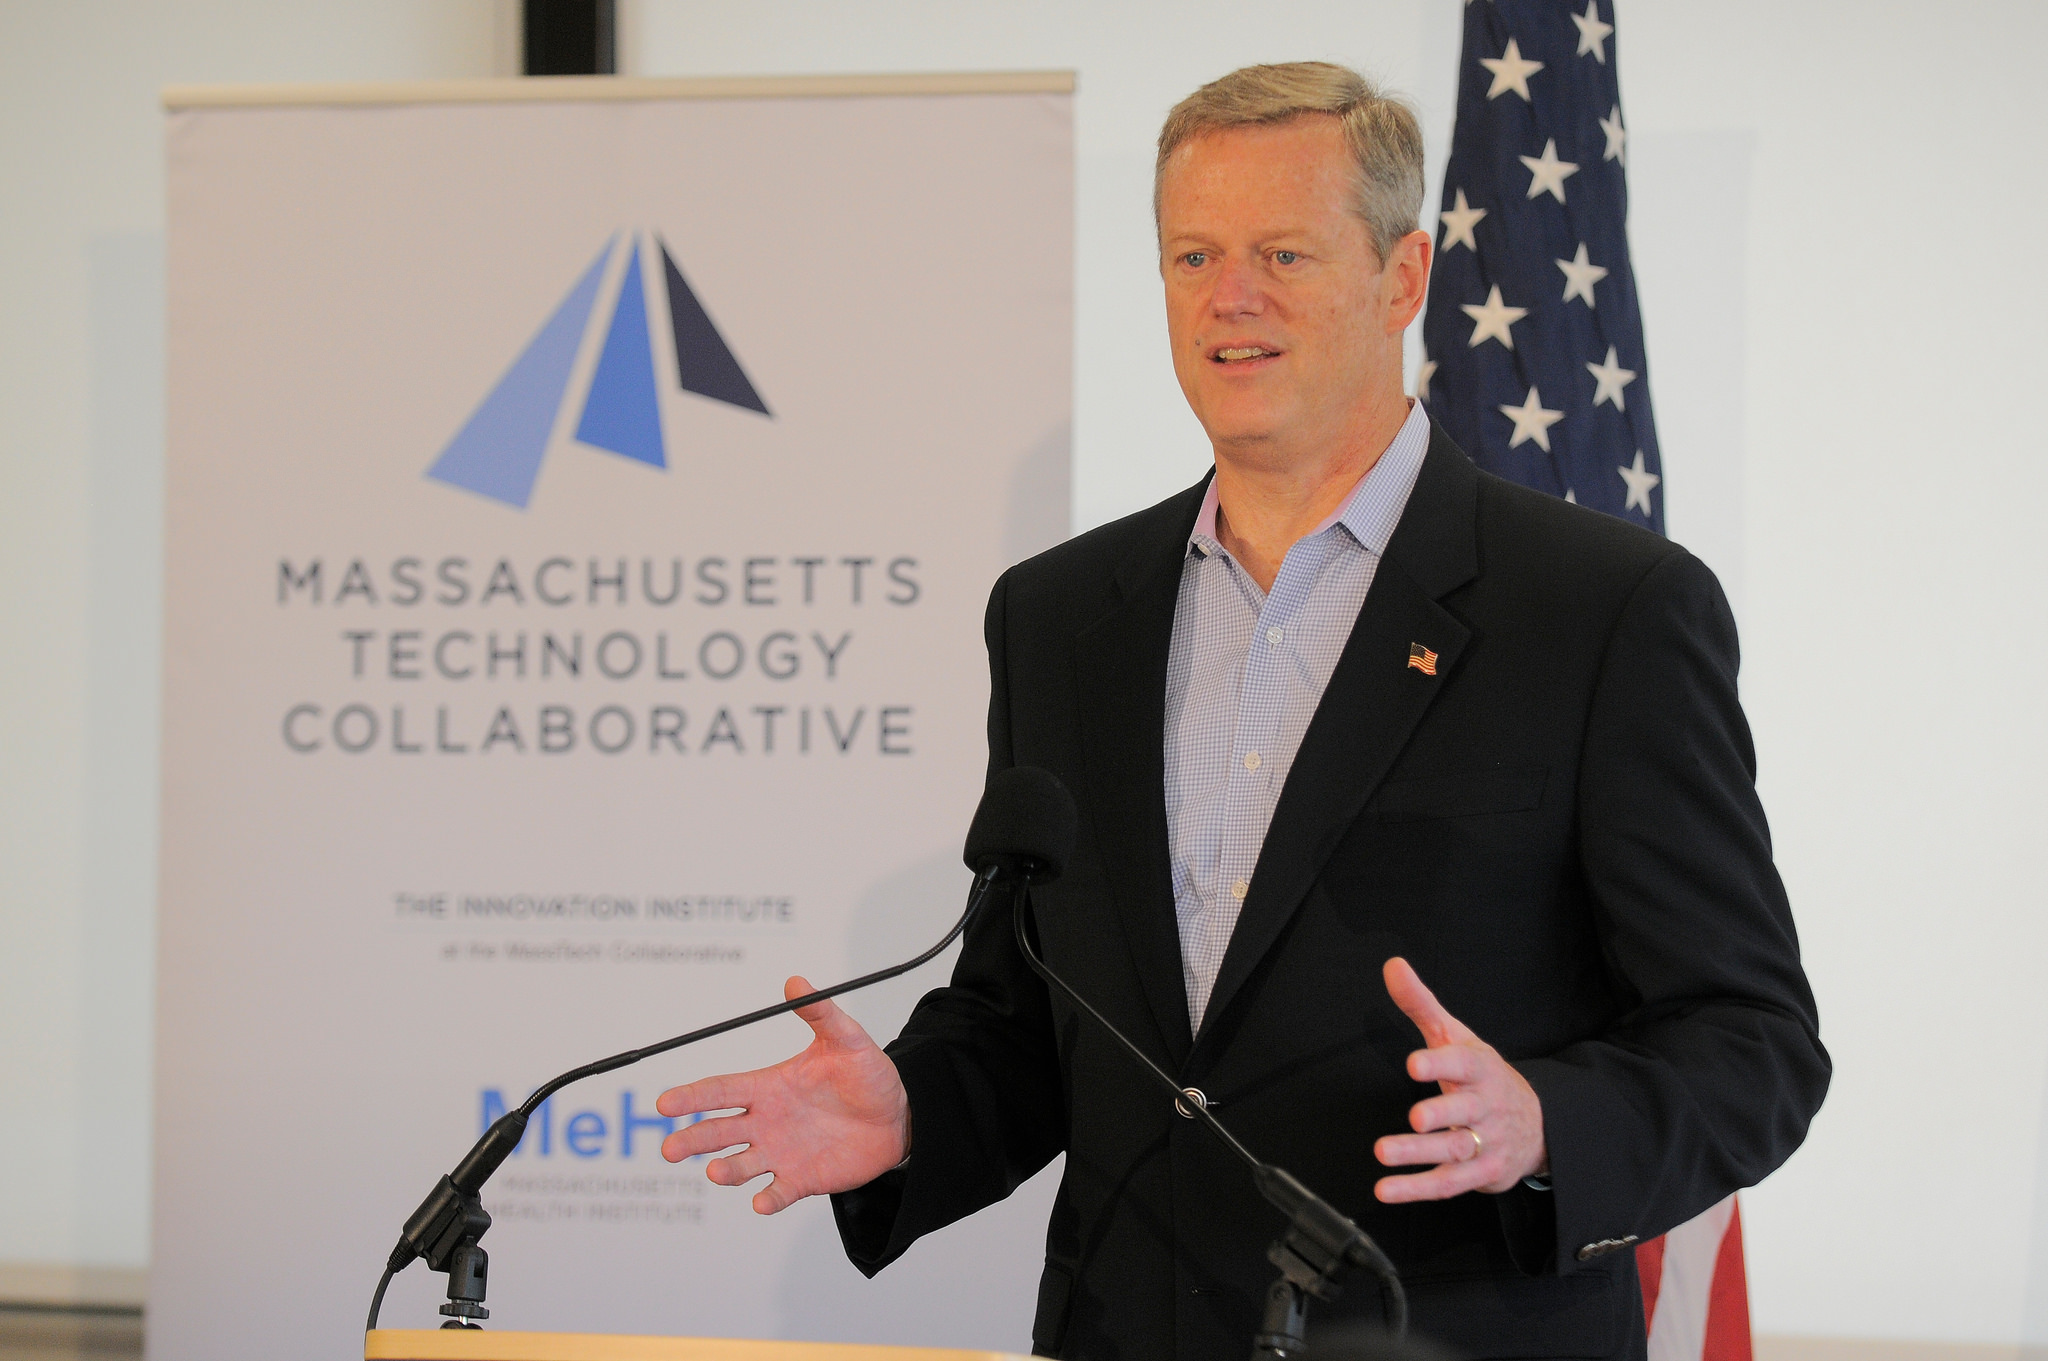 Commonwealth Awards $5 Million to UMass Amherst to Support New Data Science Collaborative